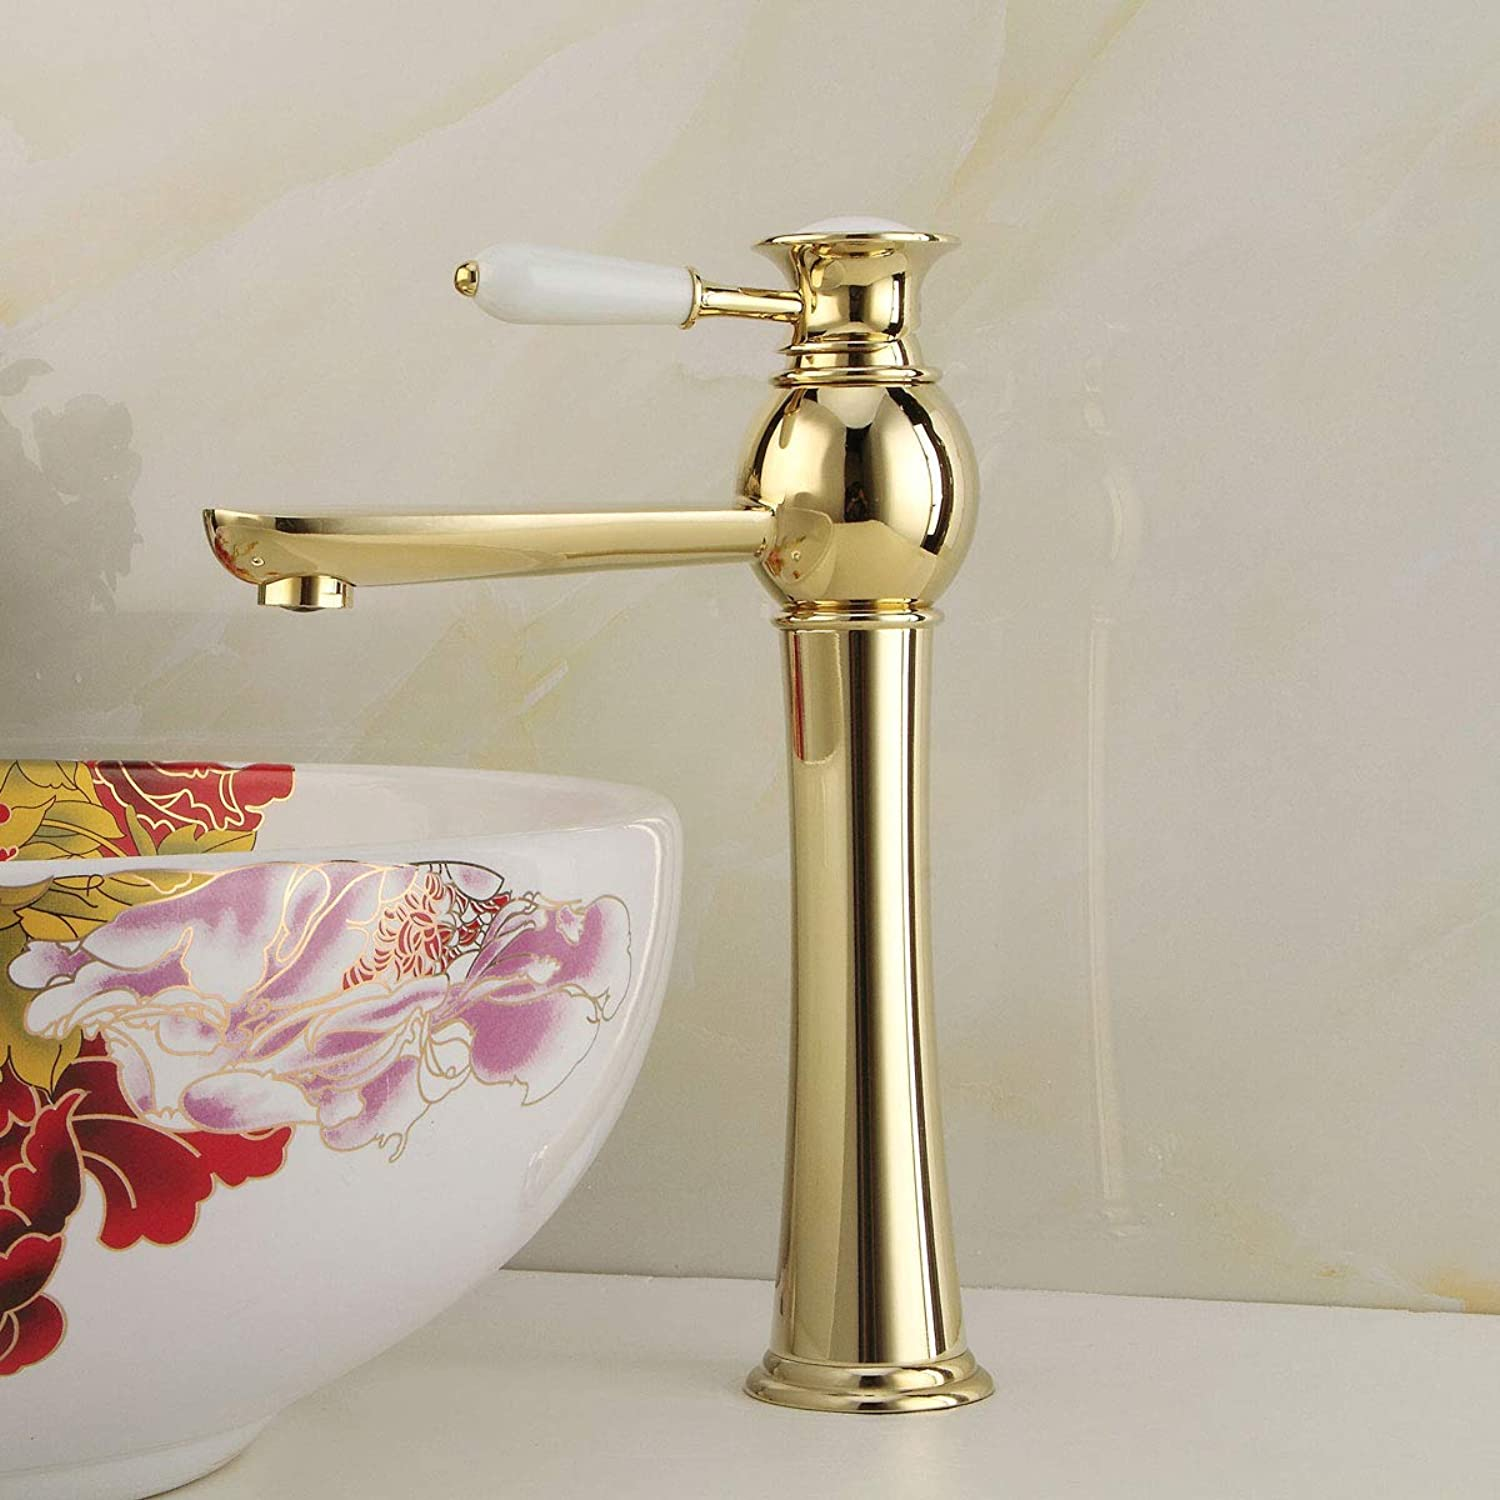 Retro High Spout Single Lever Basin Faucet,Antique Bathroom Ceramic Handle Hot and Cold Monobloc Countertop Mixer Tap,Luxury Sink for Shower Room Tap Polishing Finish (gold)